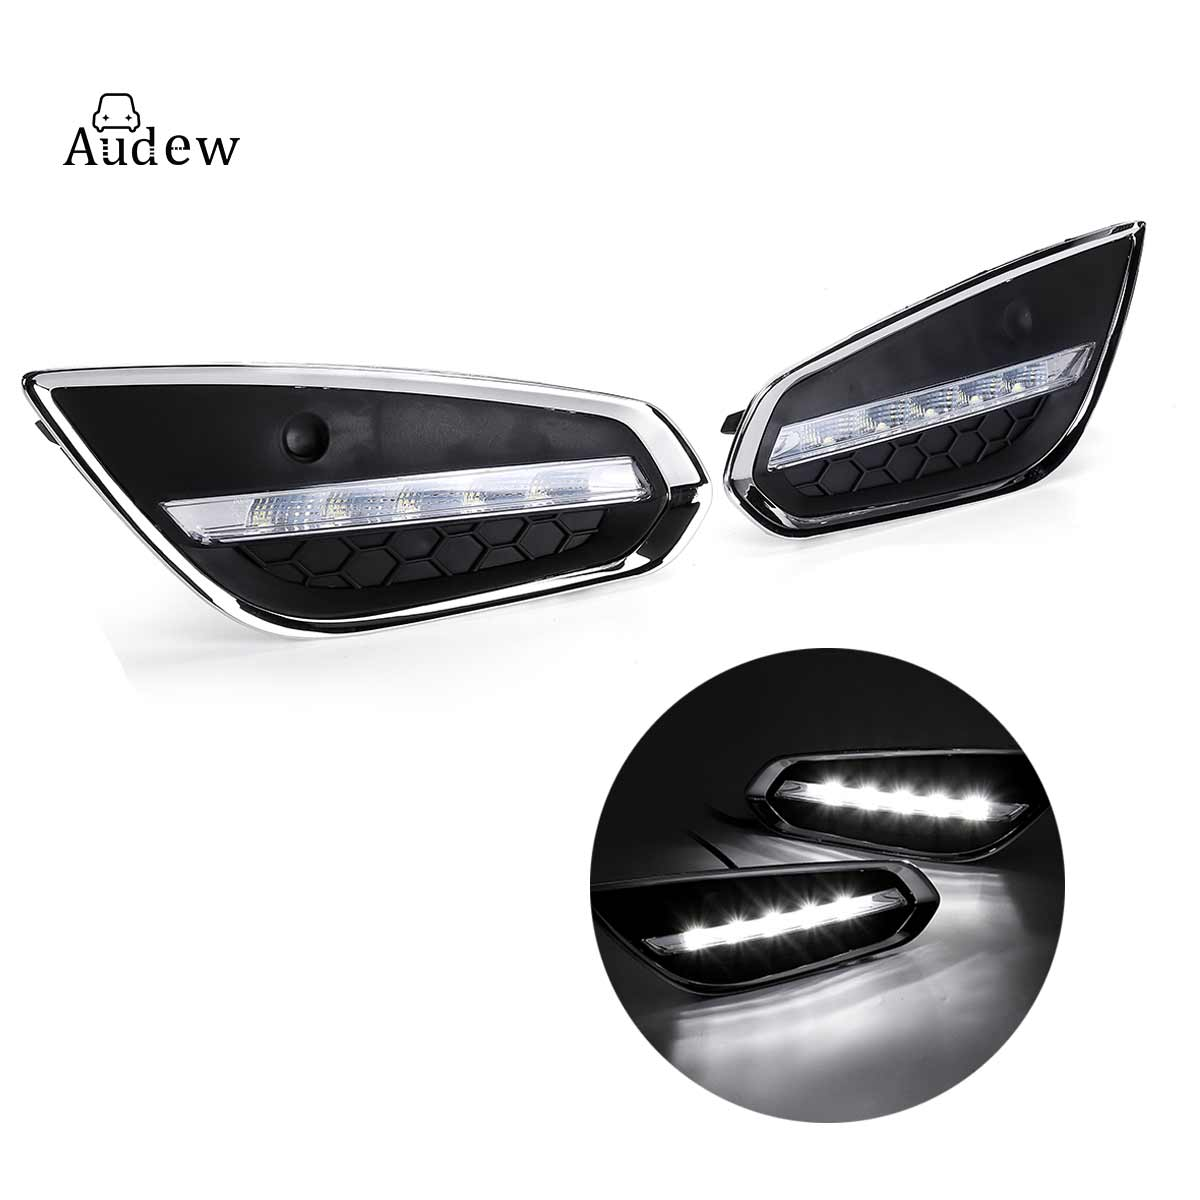 2pcs Car Styling LED DRL Daytime Driving Running Lights Daylight w Fog Lamp Cover for Volvo